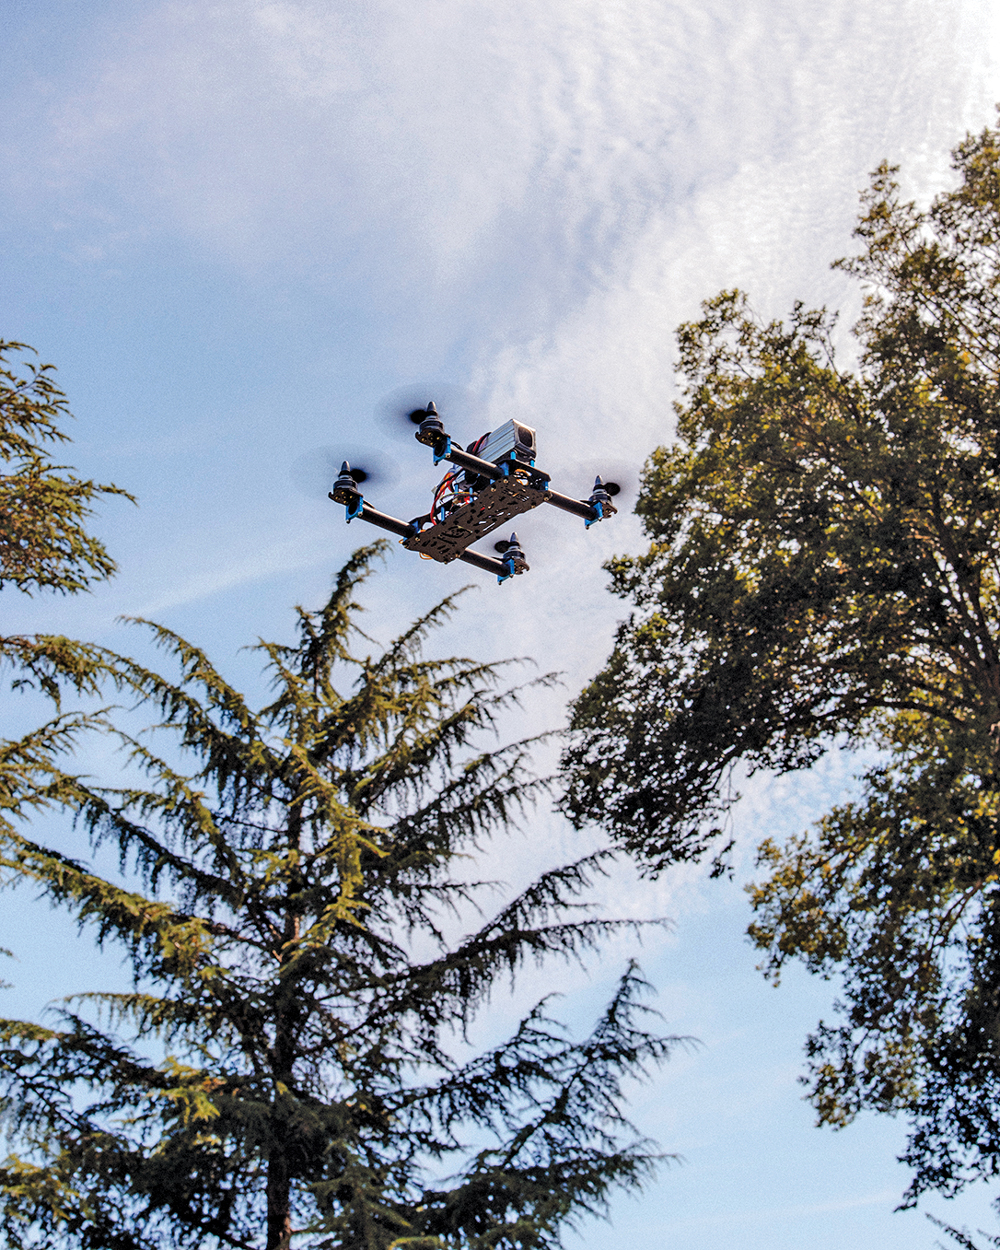 Building drones that can navigate the world and serve as airborne assistants.